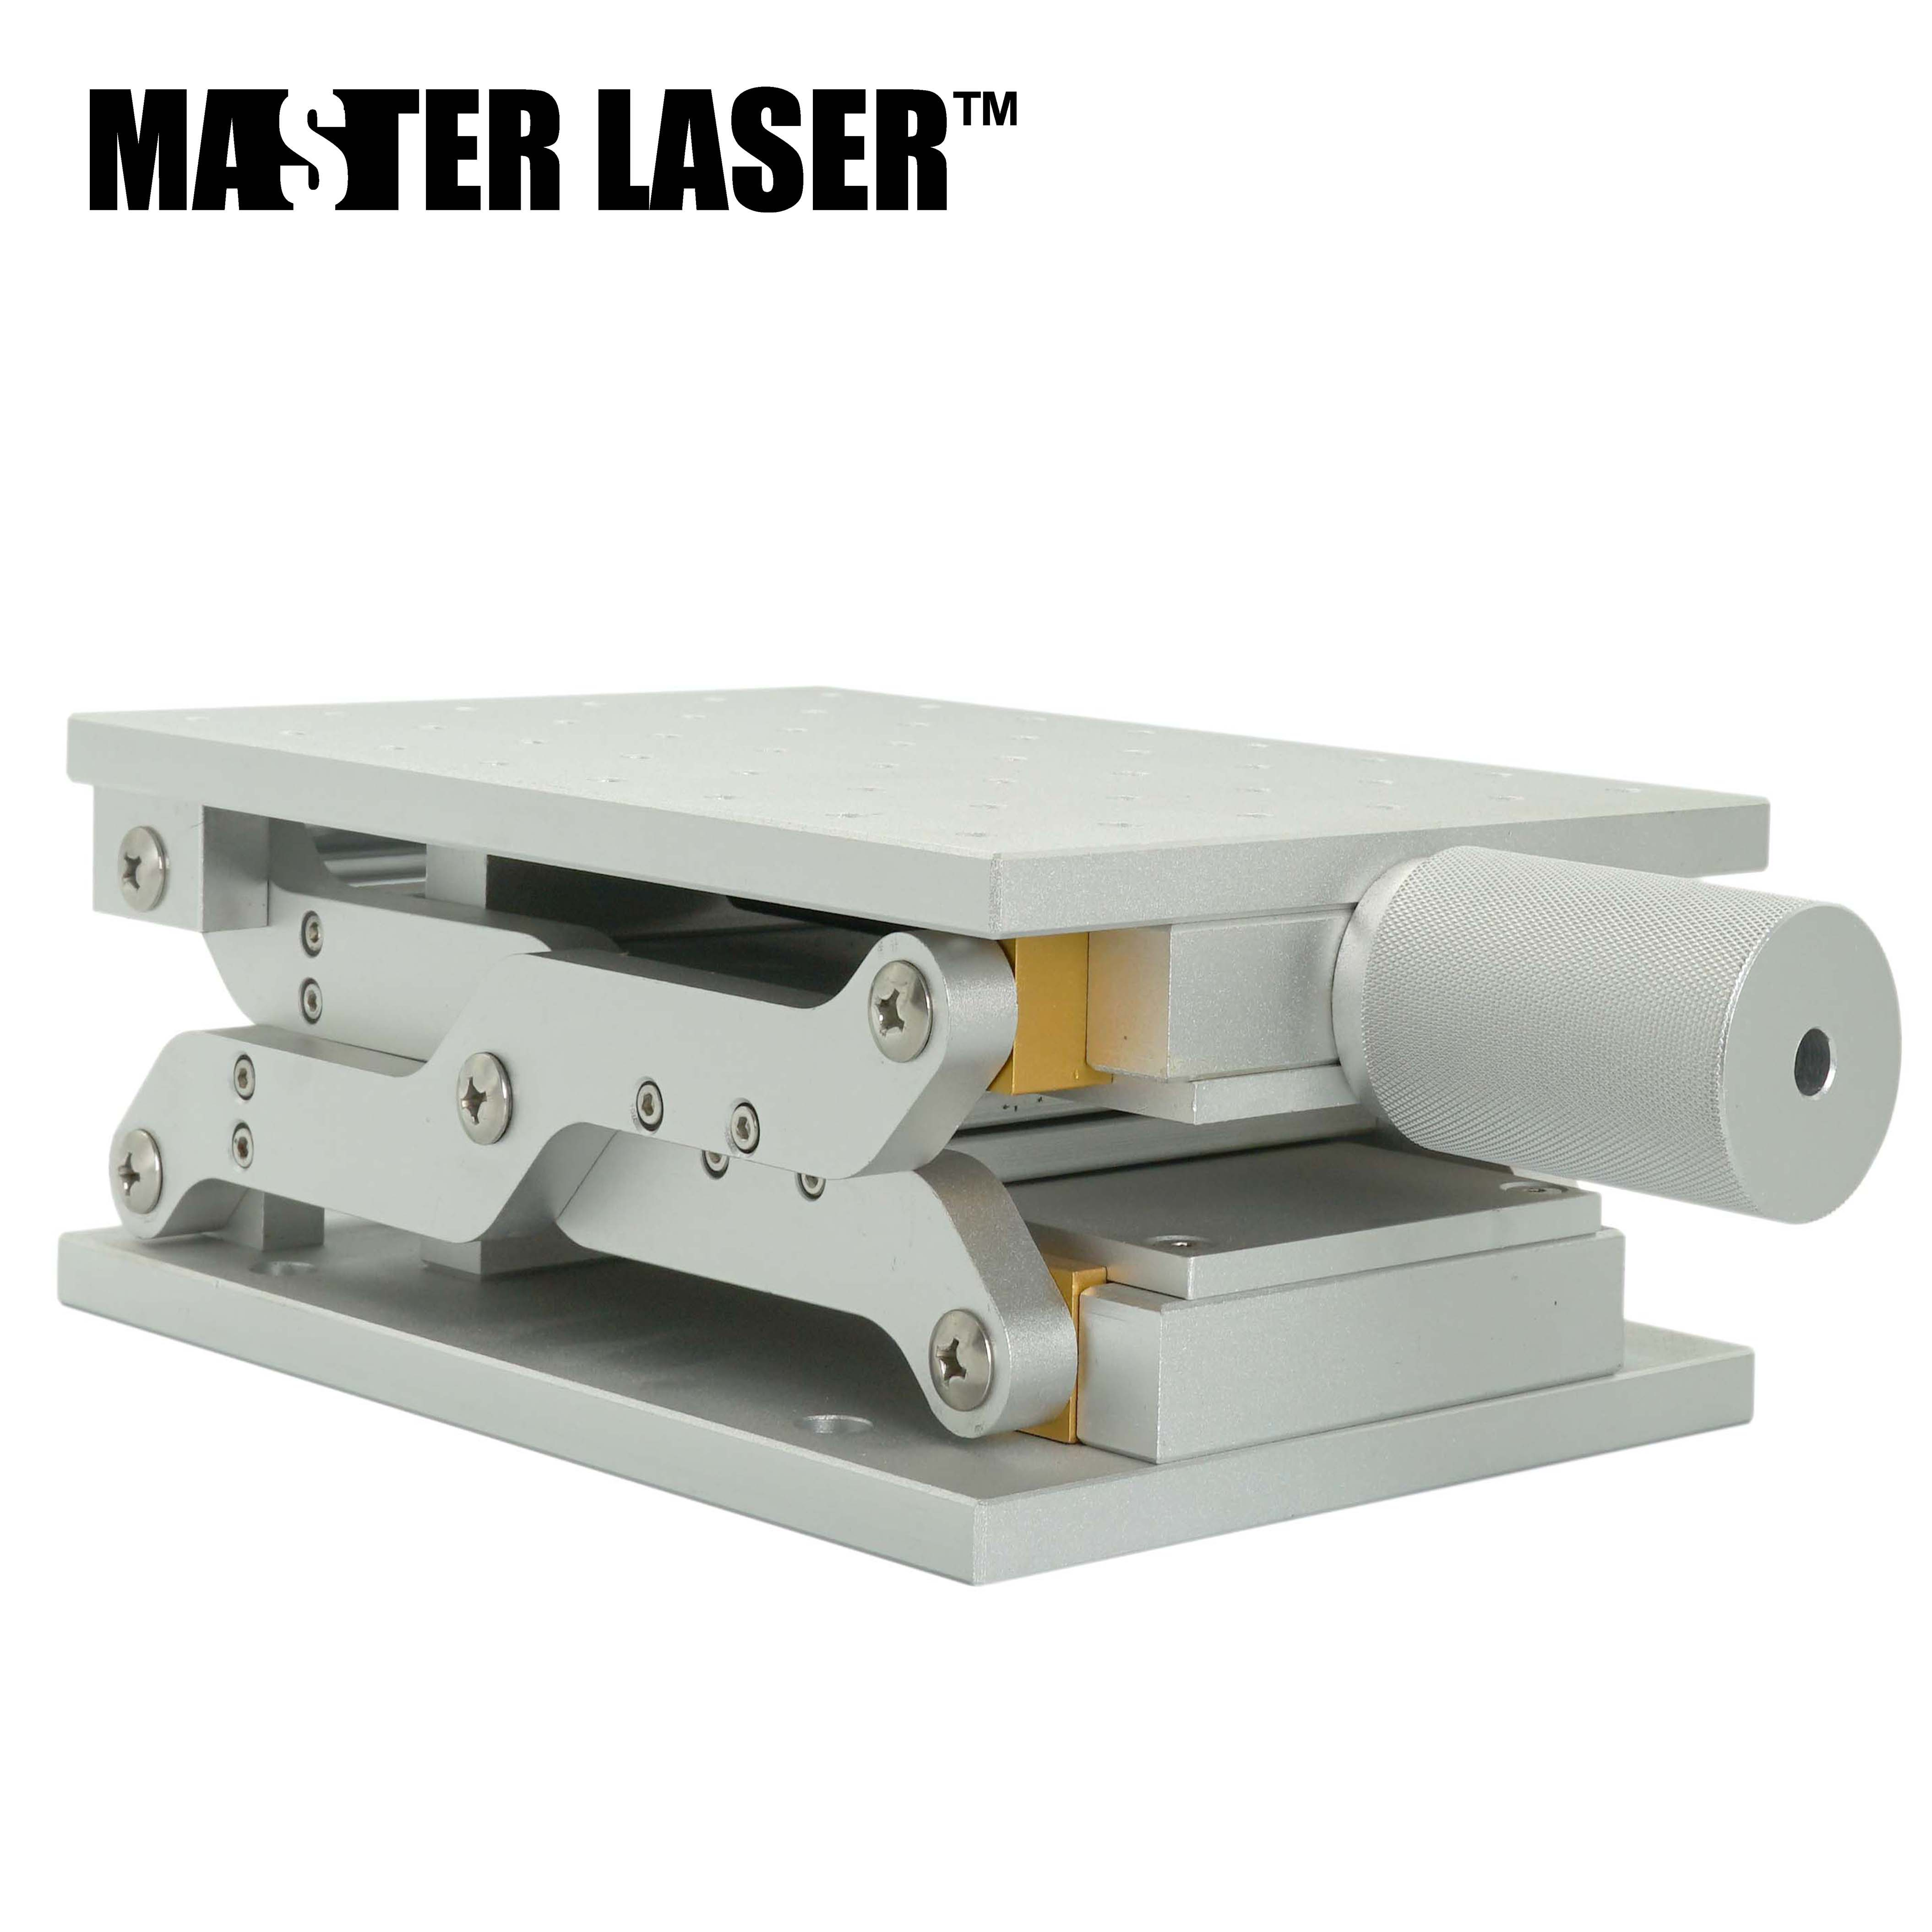 MASTER LASER 1 Axis Work Table Fiber Laser Mark Machine Z Axis Moving Table 210x150 Mm Portable Cabinet Case DIY Part